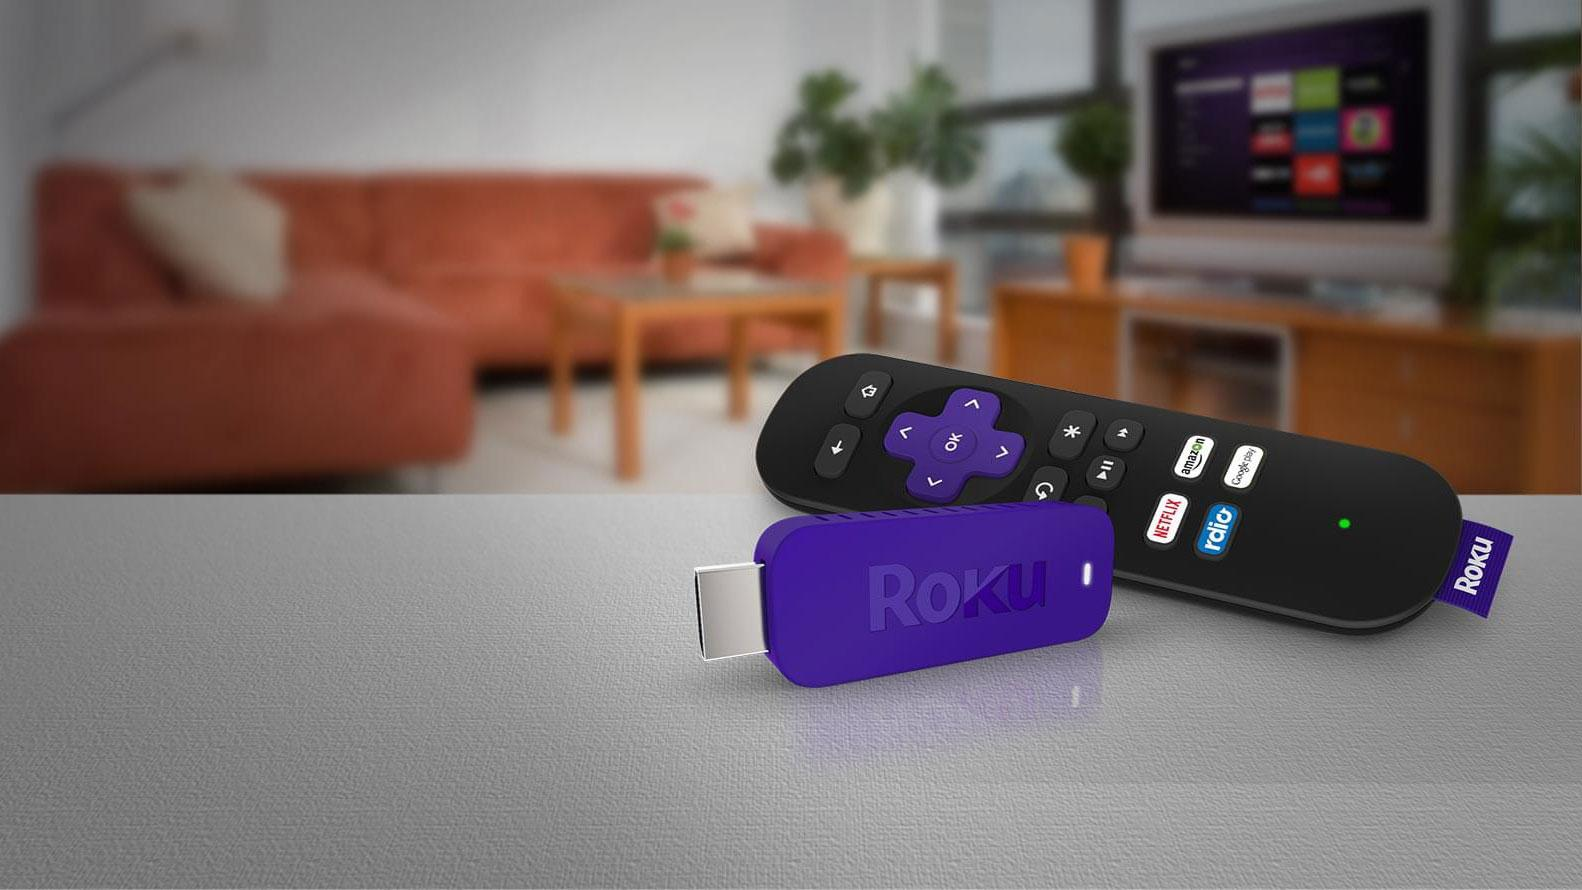 Activate Hbogo with roku